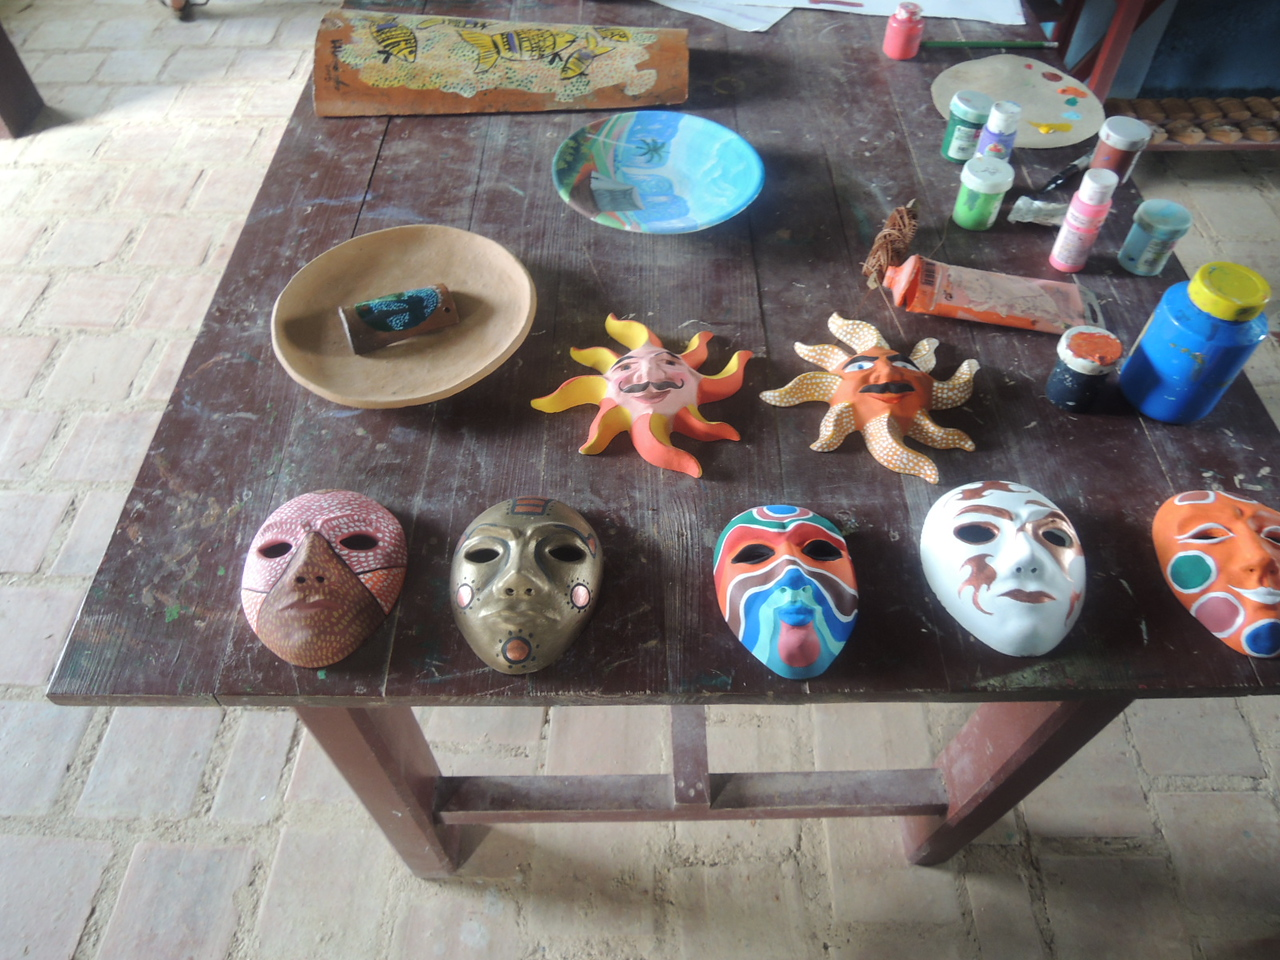 Masks, etc.